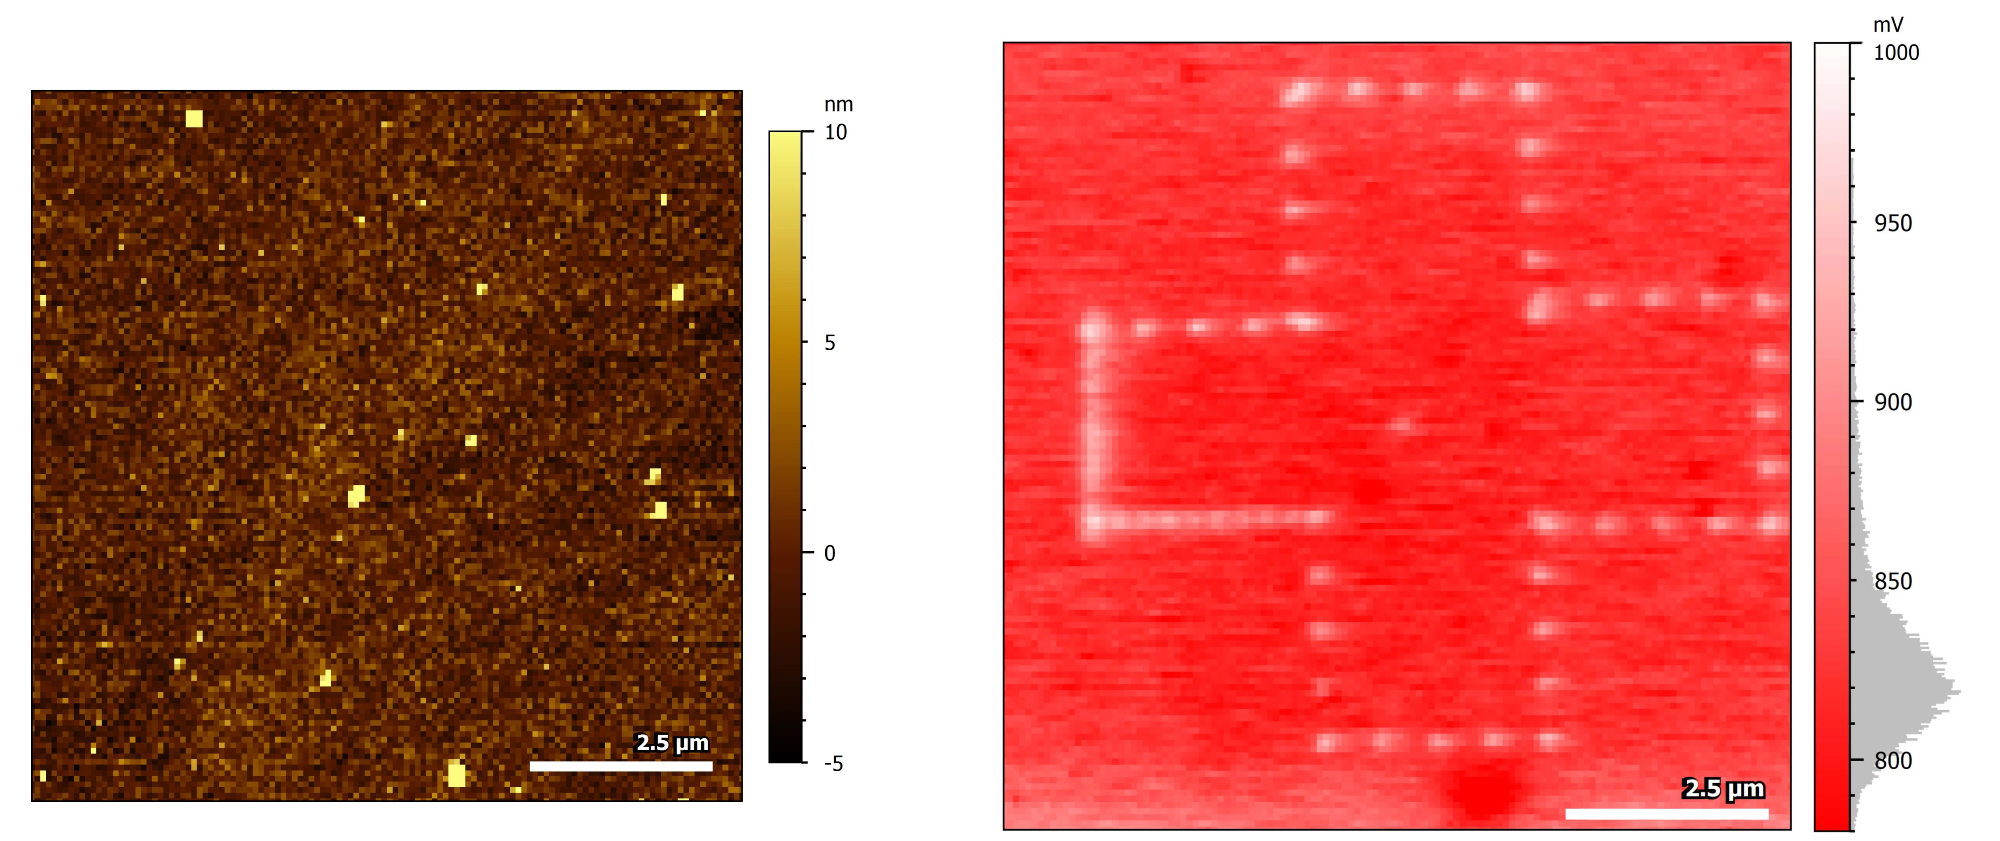 KPFM of locally deposited charges on an insulating oxide surface. The left image shows the surface topography while the right image is the KPFM image.